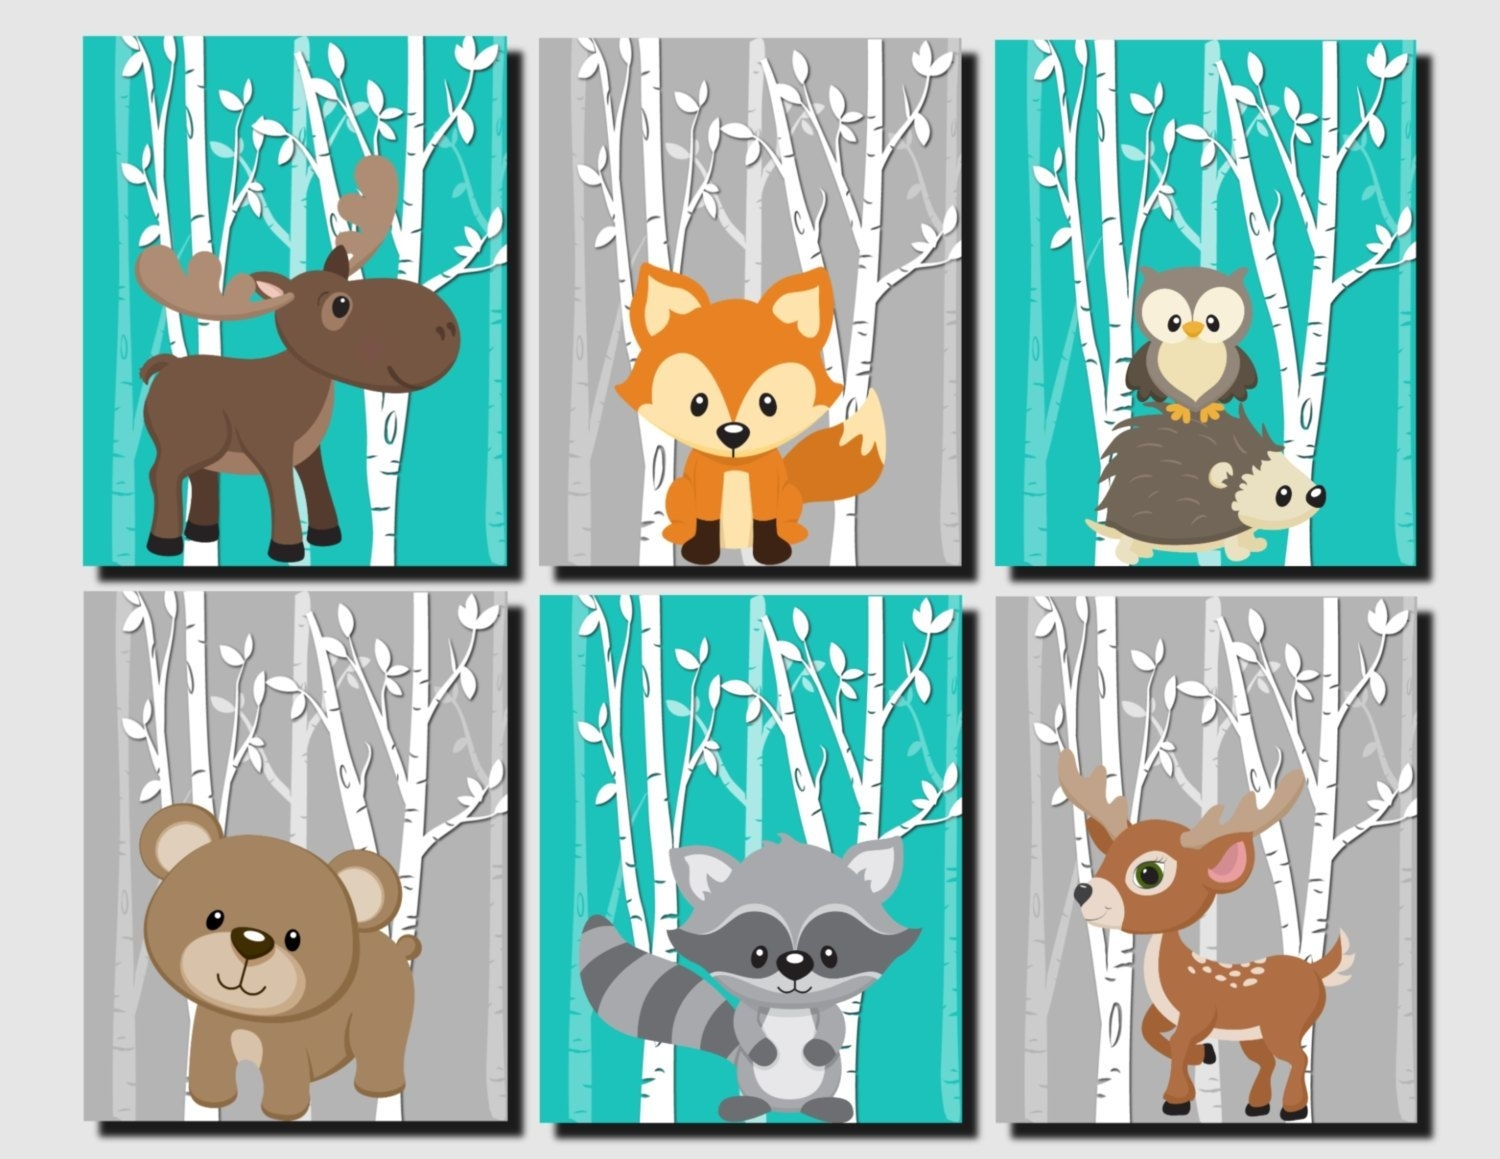 Woodland Nursery, Woodland Wall Decor Kids, Teal, Gray, Forest Pertaining To Most Recent Kids Wall Art (View 15 of 15)